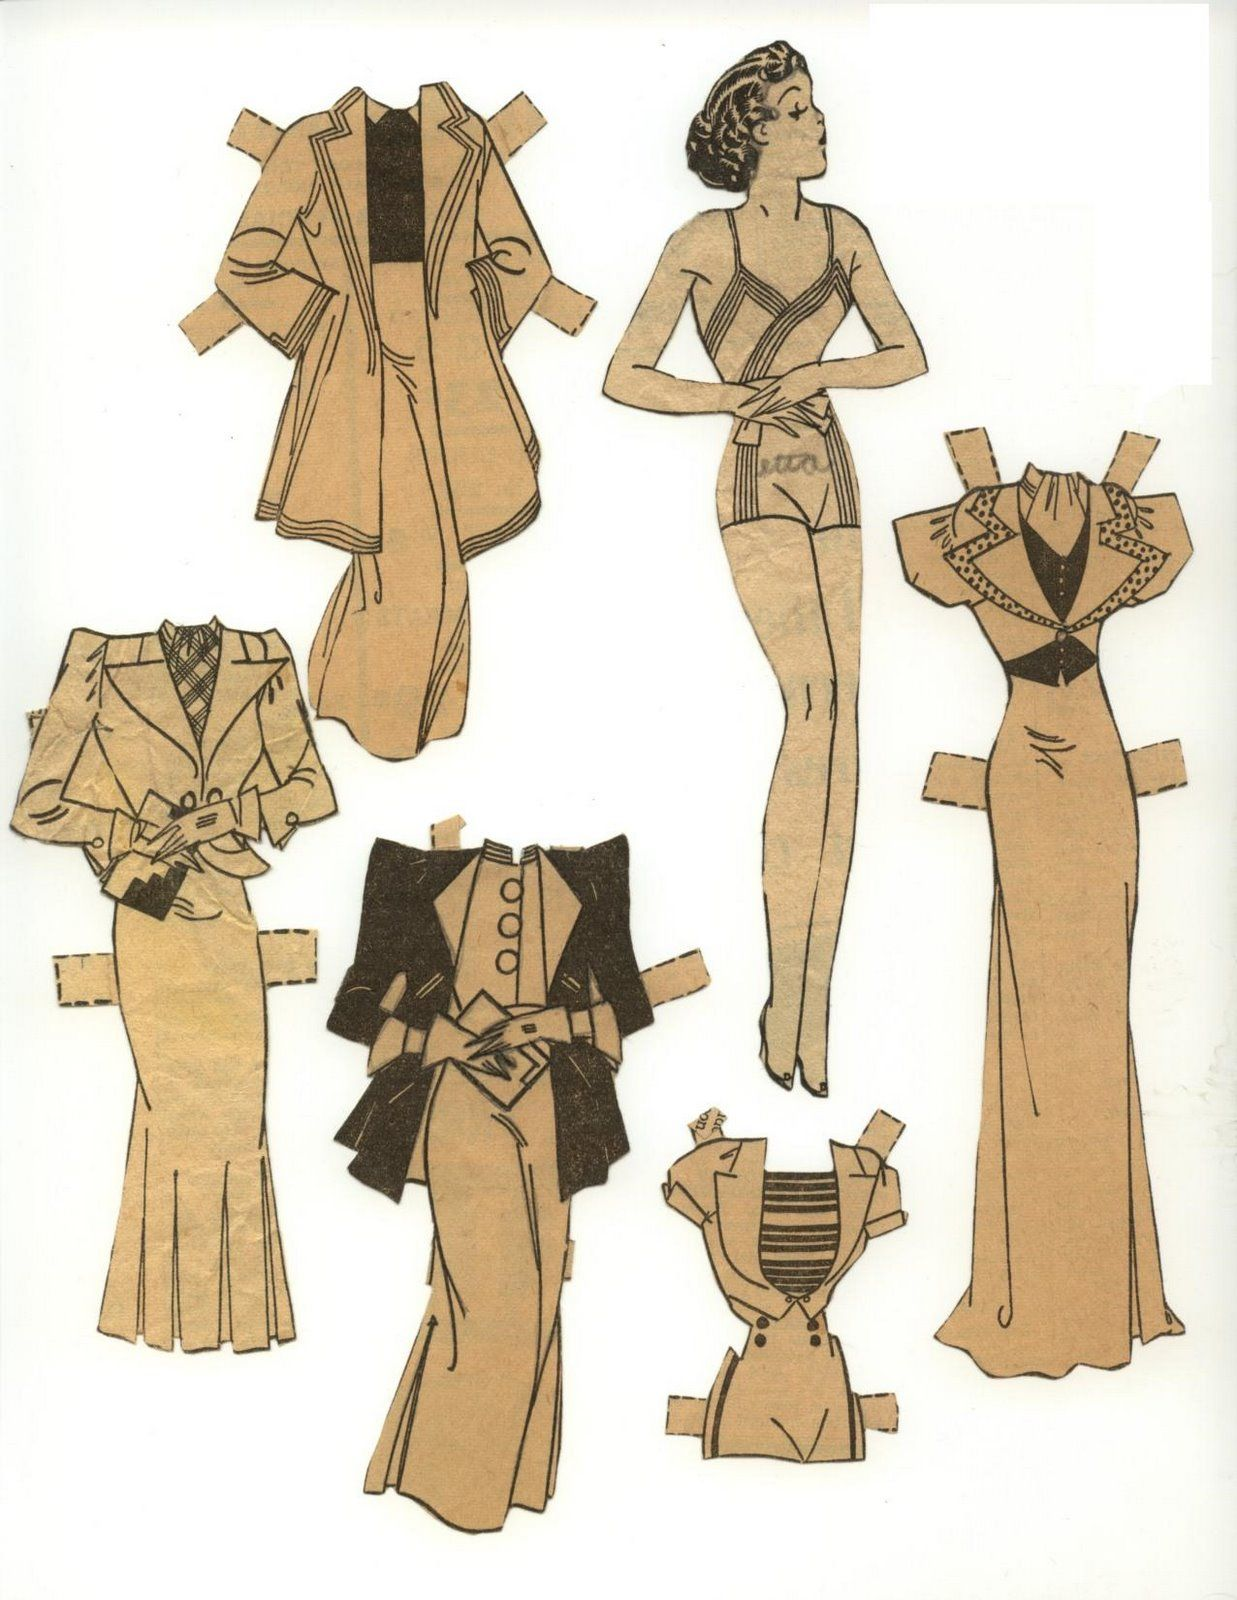 By 1937, the Etta Kett paper doll craze seemed to be winding down. They